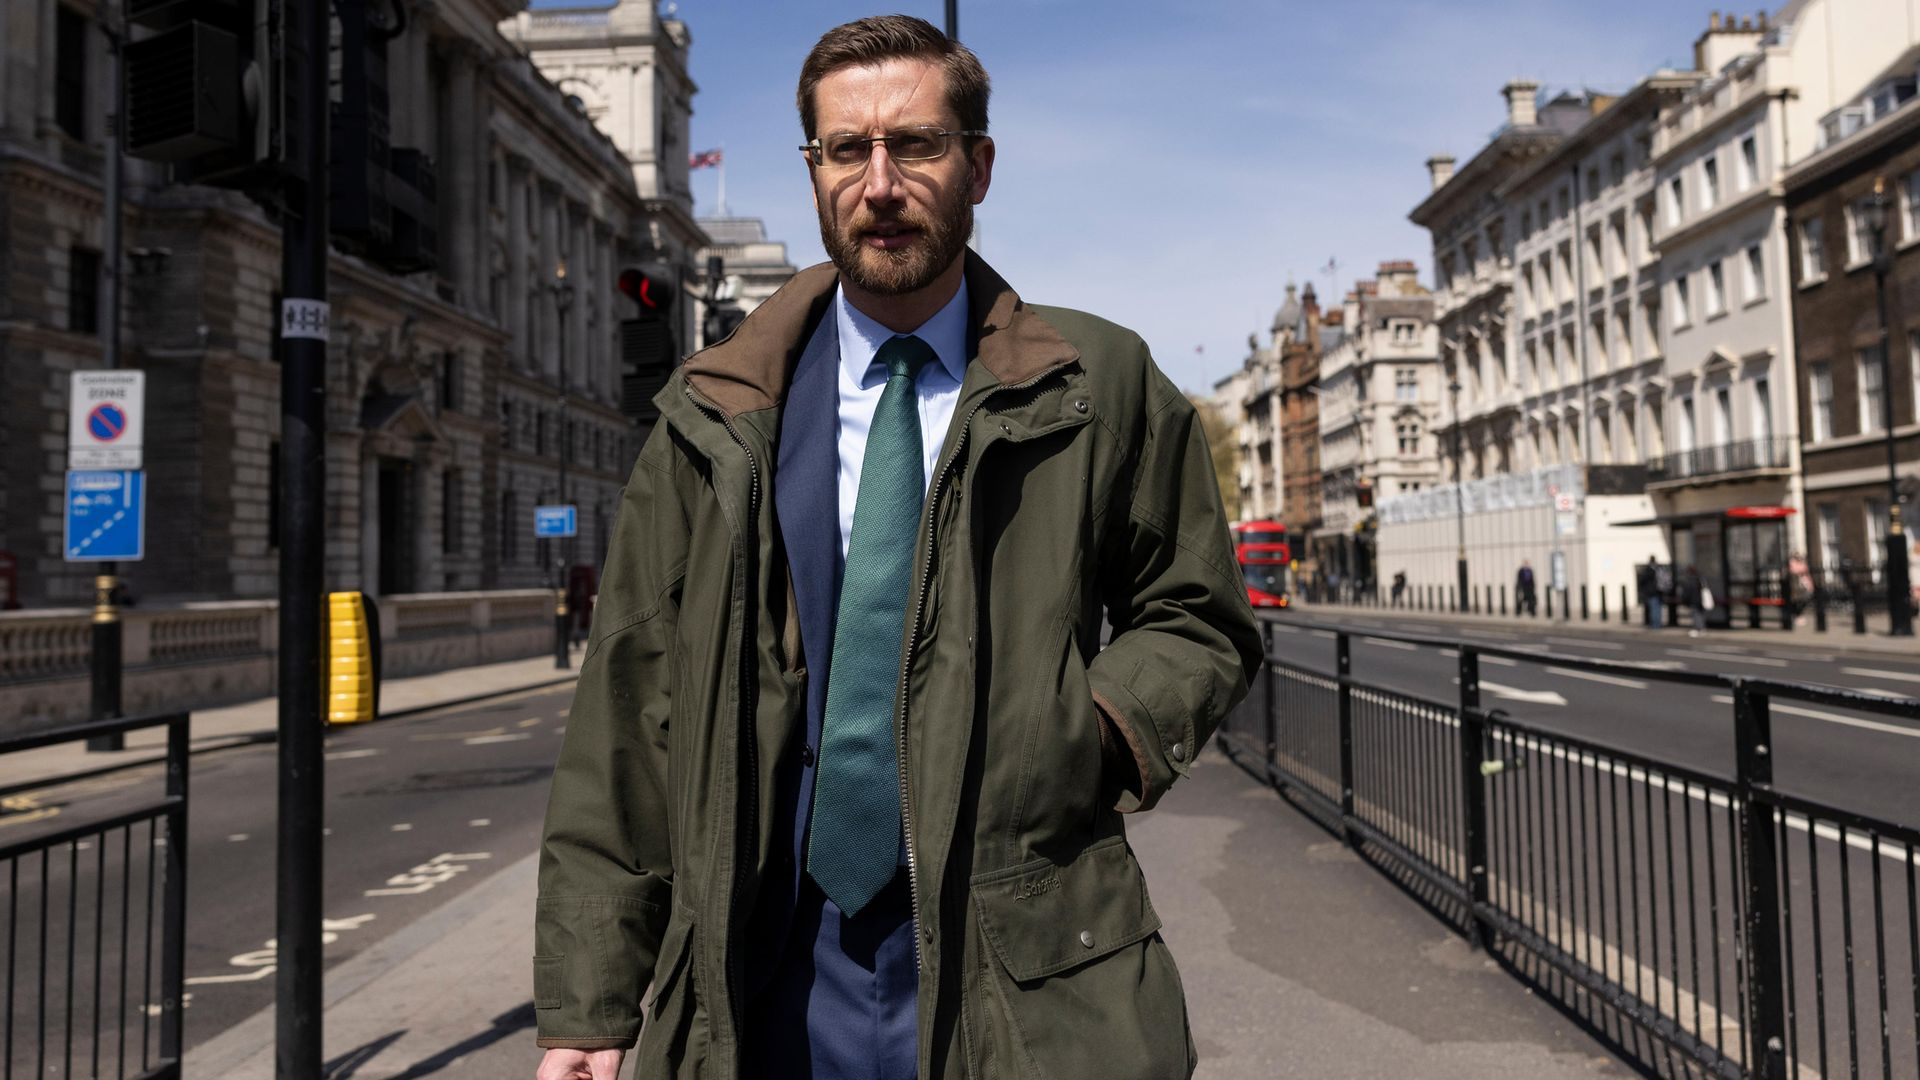 Cabinet secretary Simon Case walks through Westminster, on his way to the committee hearing which saw him criticised for giving uninformative, straight-bat responses about Boris Johnson's flat refurbishment and the 'chatty rat' leak inquiry - Credit: Getty Images